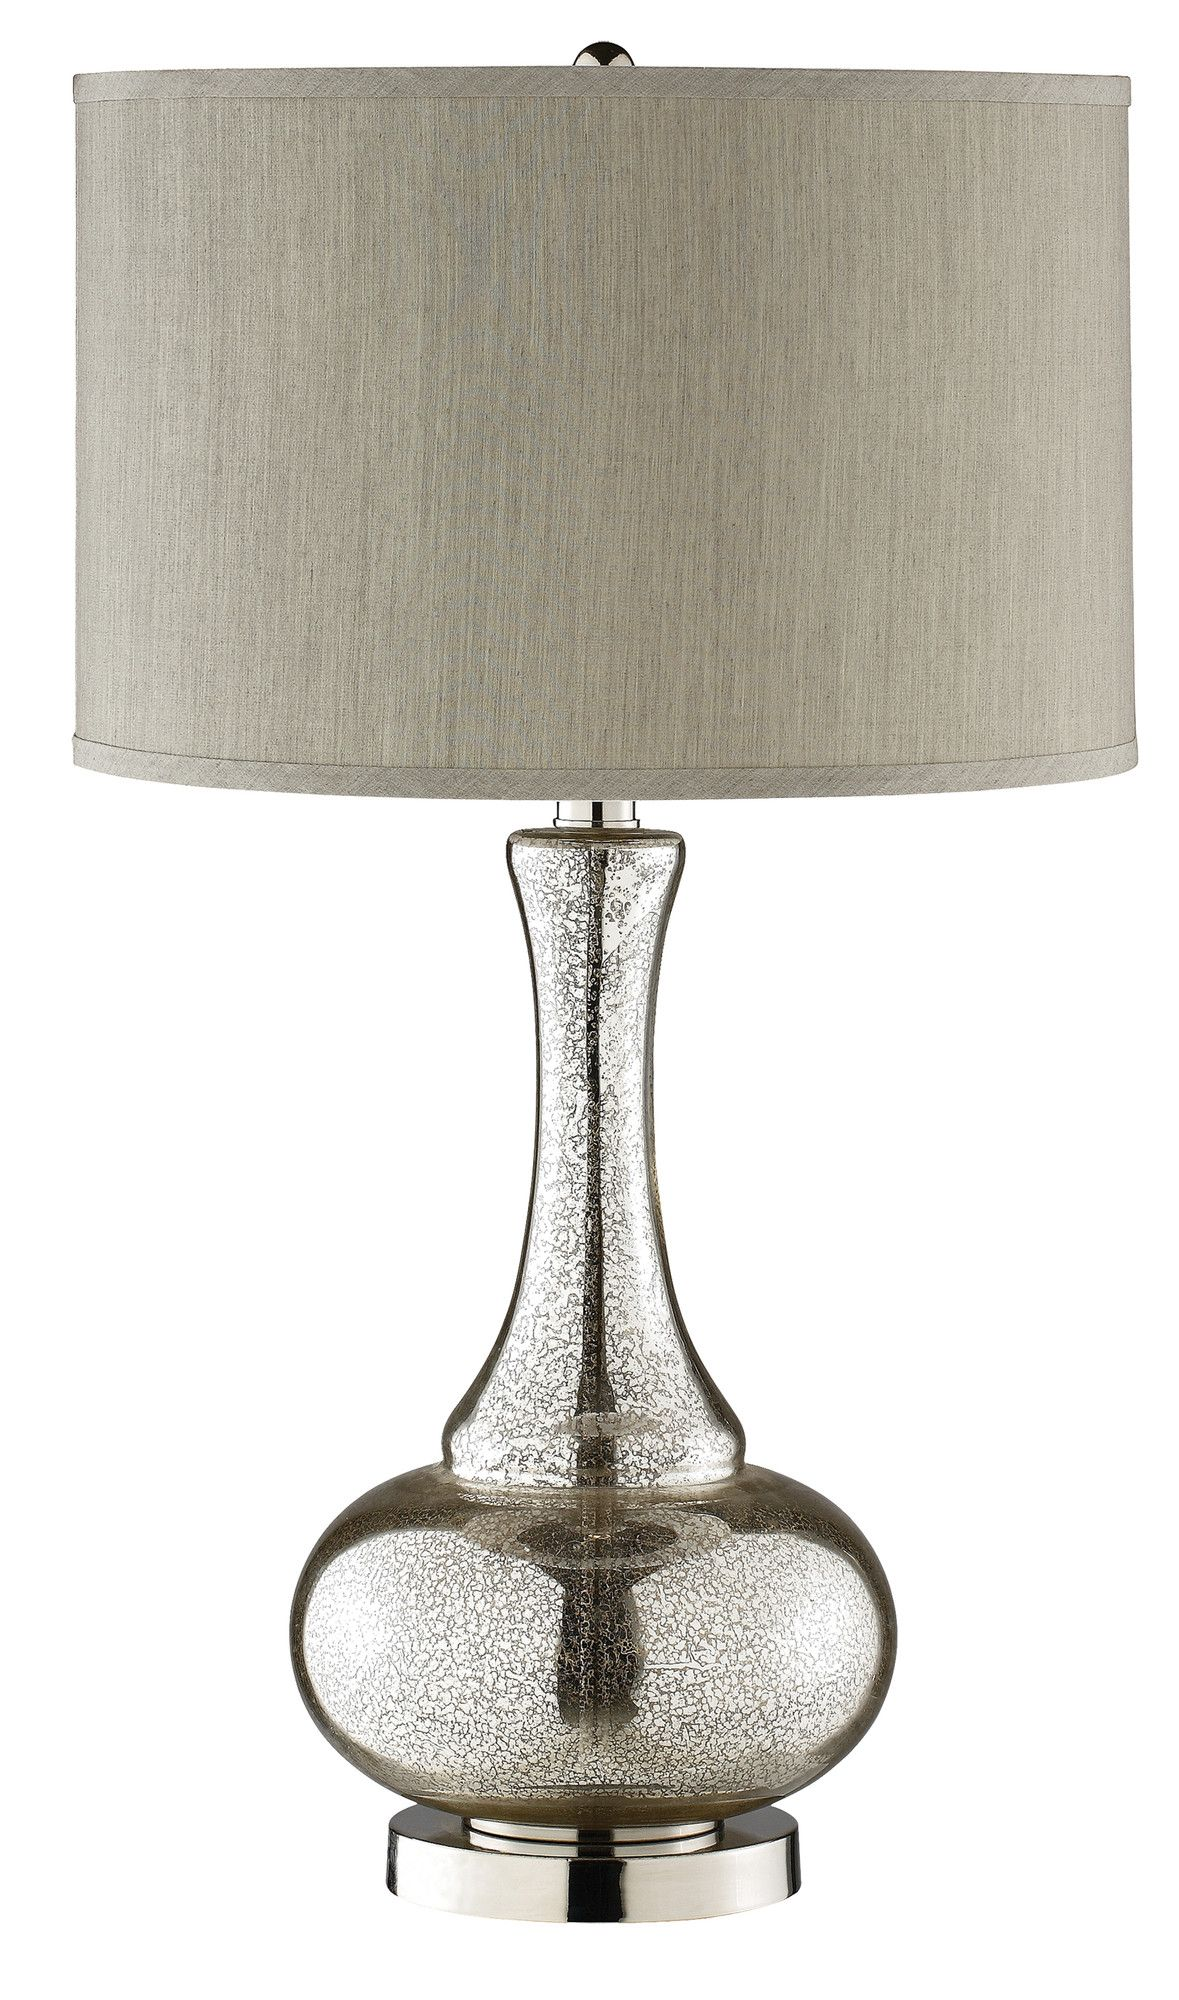 Stein World Casual Elegance Glass Gourd Table Lamp Style